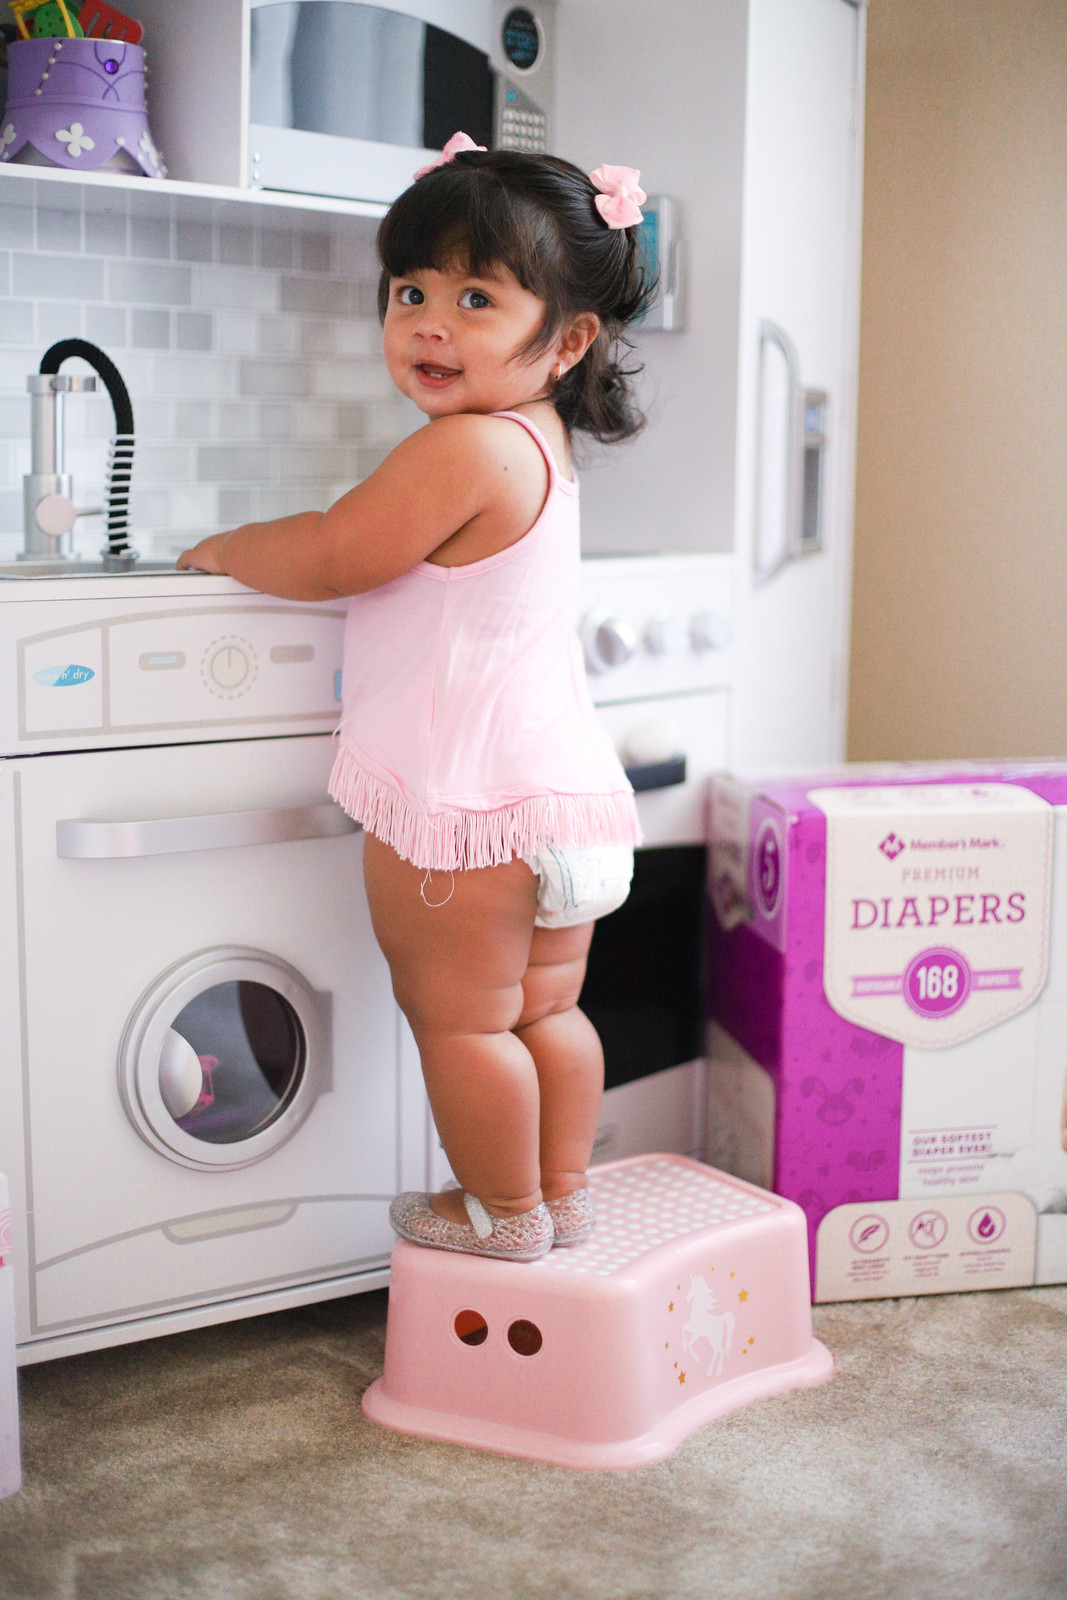 Premium Baby Diapers that are a Great Value for Parents #SamsClub